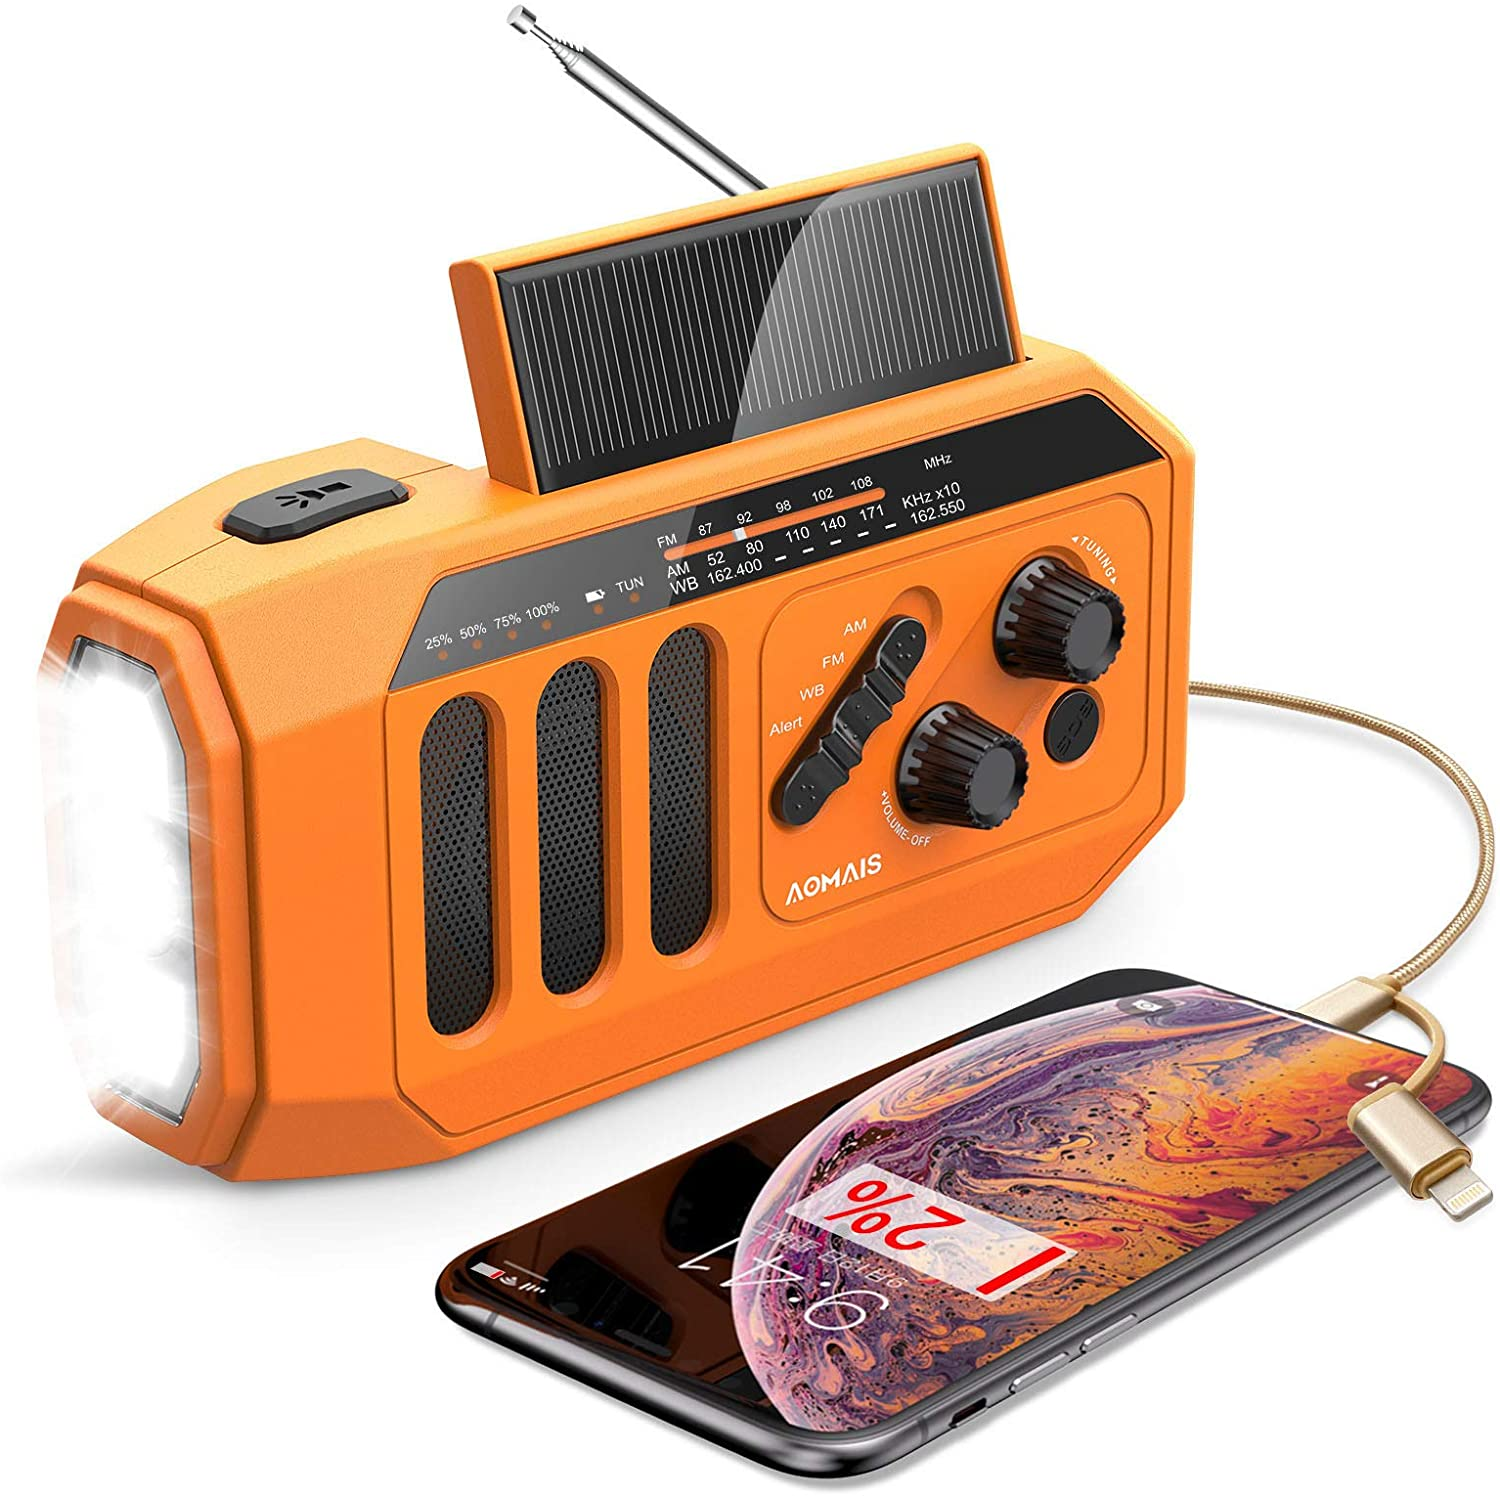 【2020 Newest】 Emergency Radio, 5000mAh Hand Crank Solar Weather Radio, NOAA/AM/FM Portable Radio with LED Flashlight&Reading Lamp, USB Cell Phone Power Charger, SOS Alarm for Home, Camping&Survival